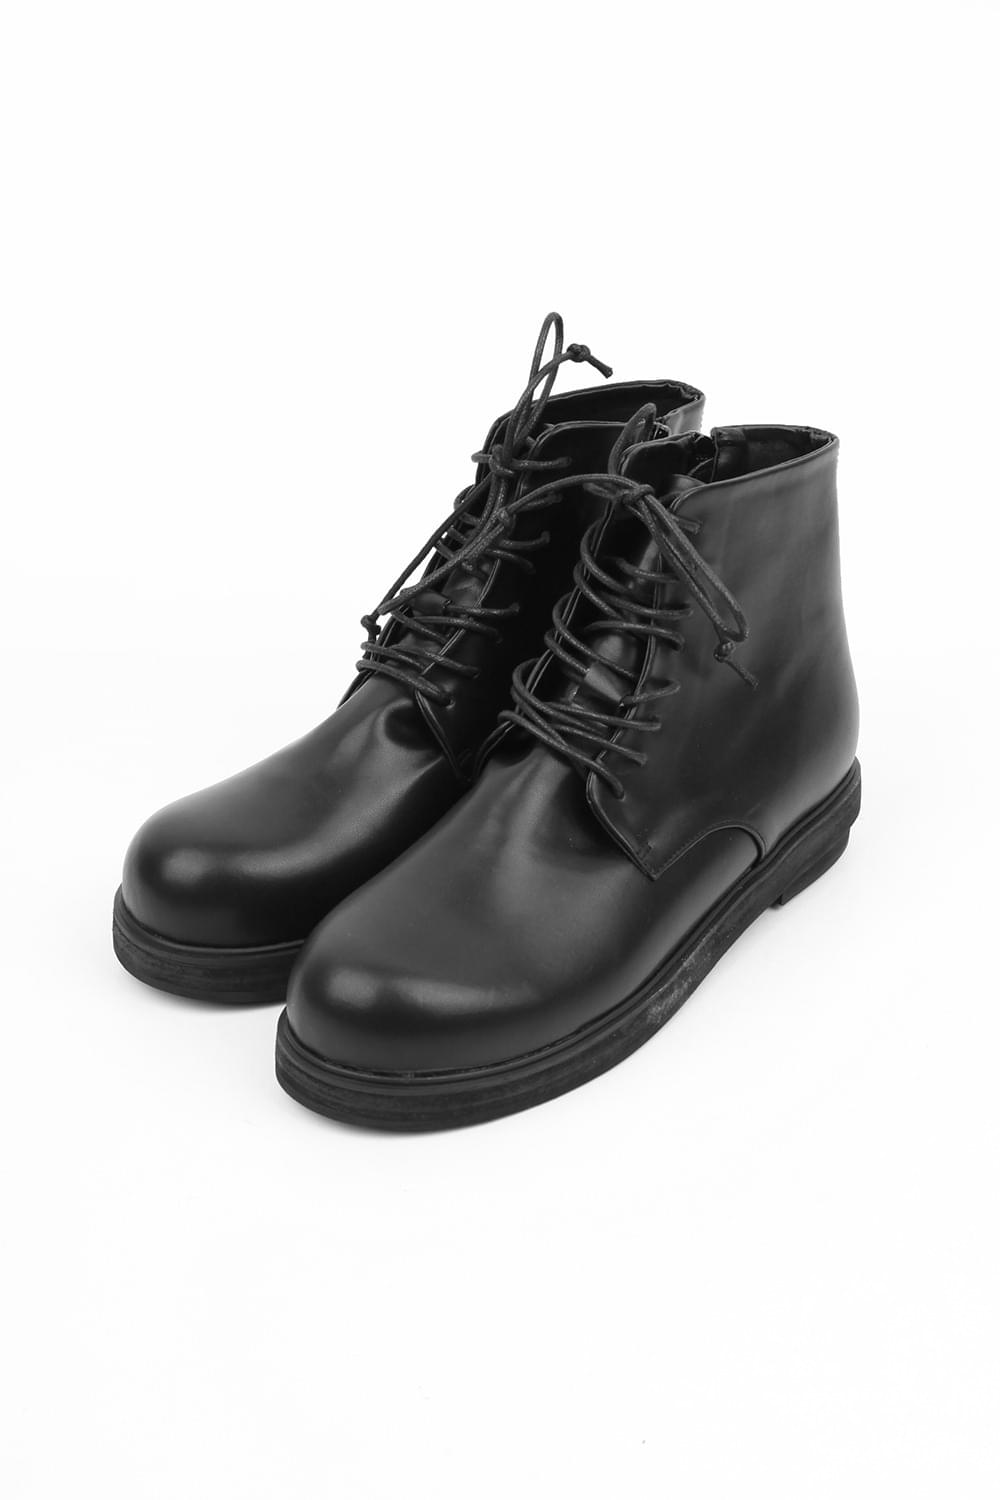 rounded edge middle boots (black)